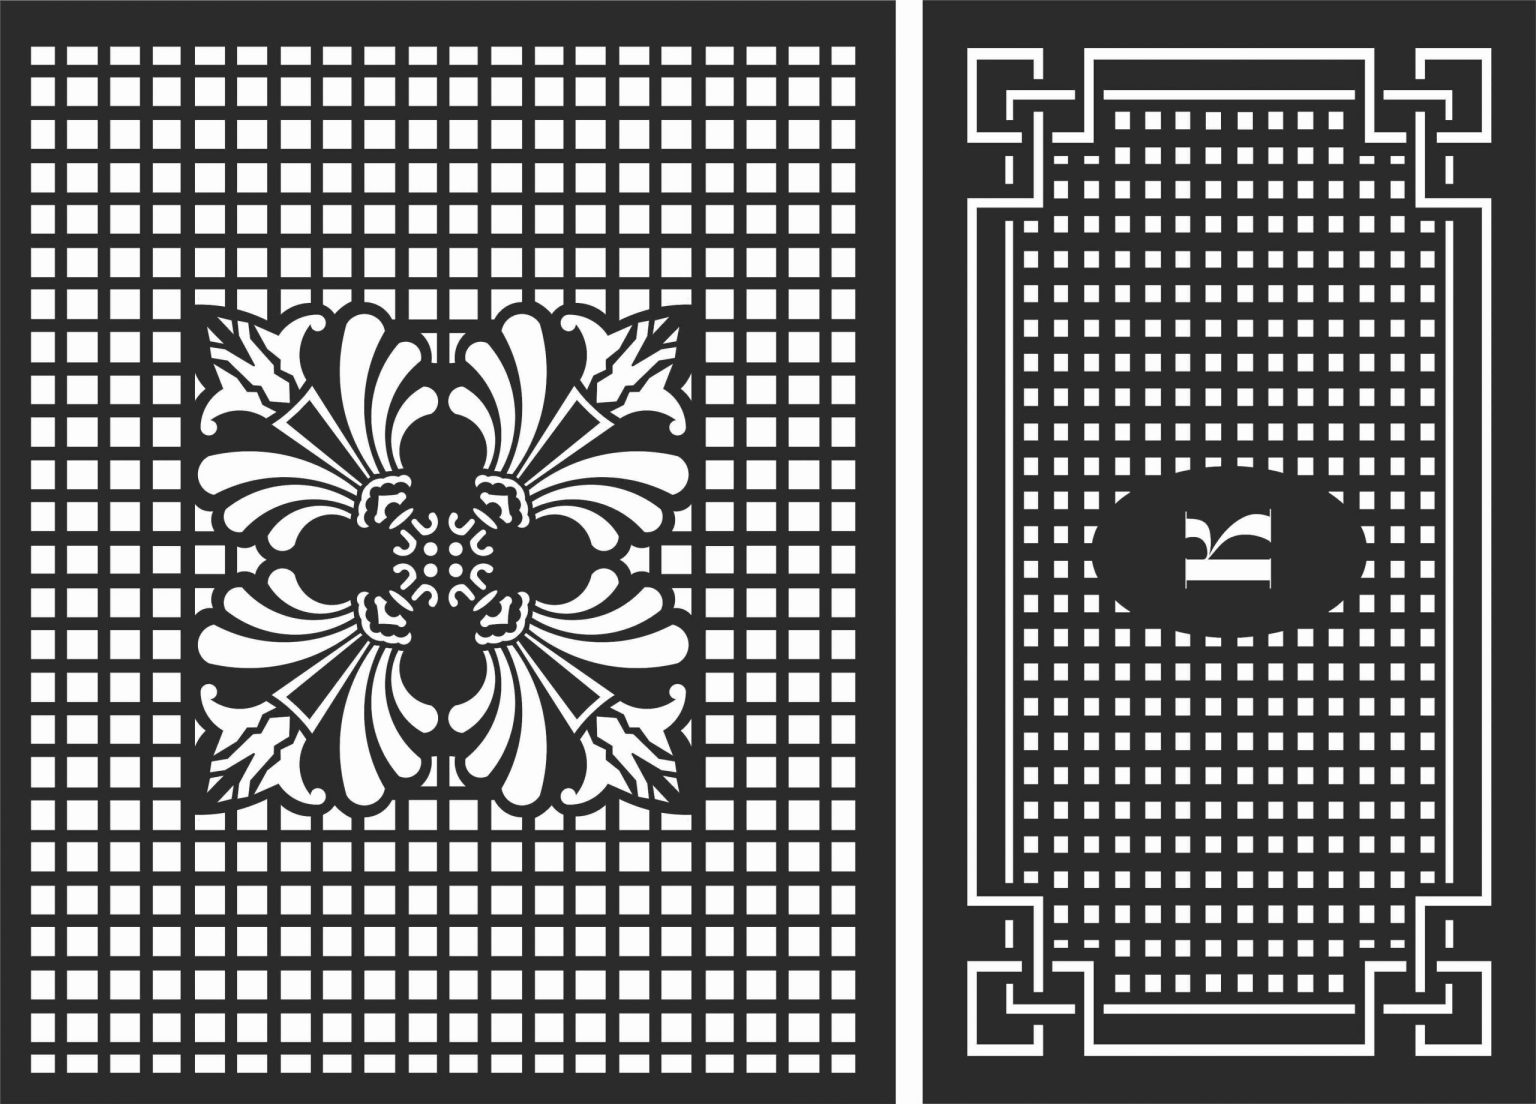 Decorative Screen Patterns For Laser Cutting 102 Free DXF File